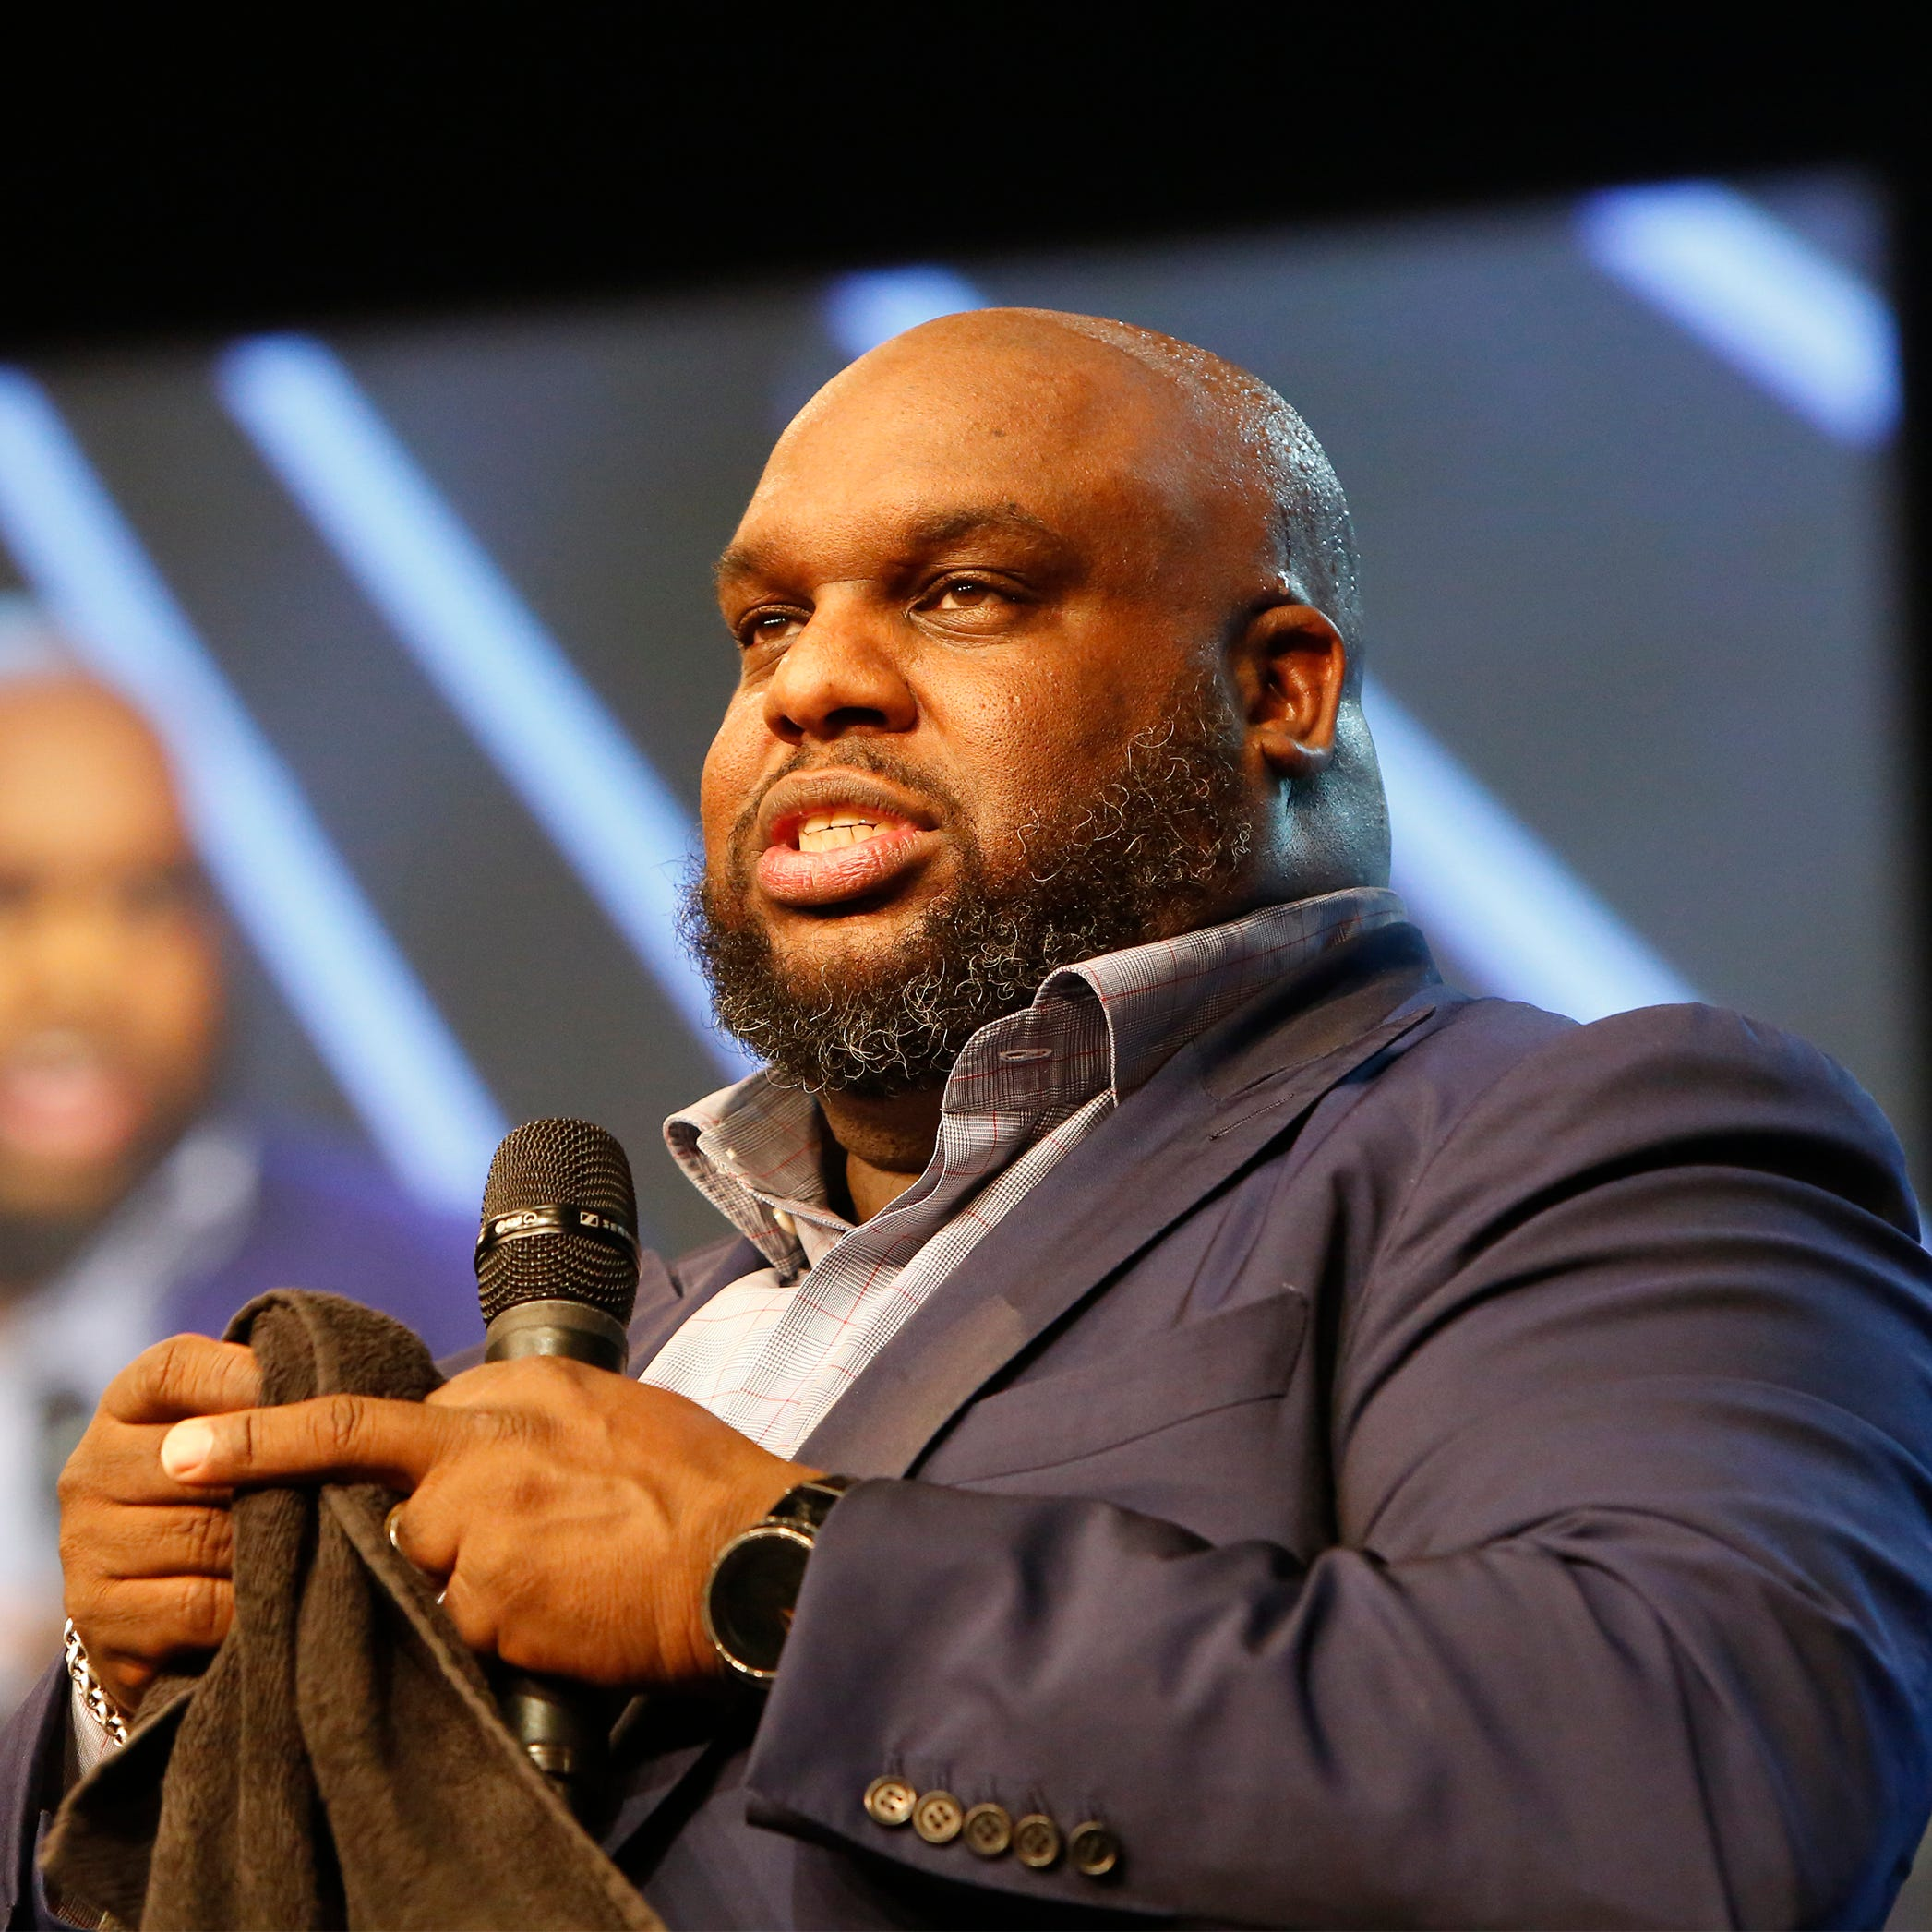 John Gray asks Relentless Church members to give $250K to help pay for church roof